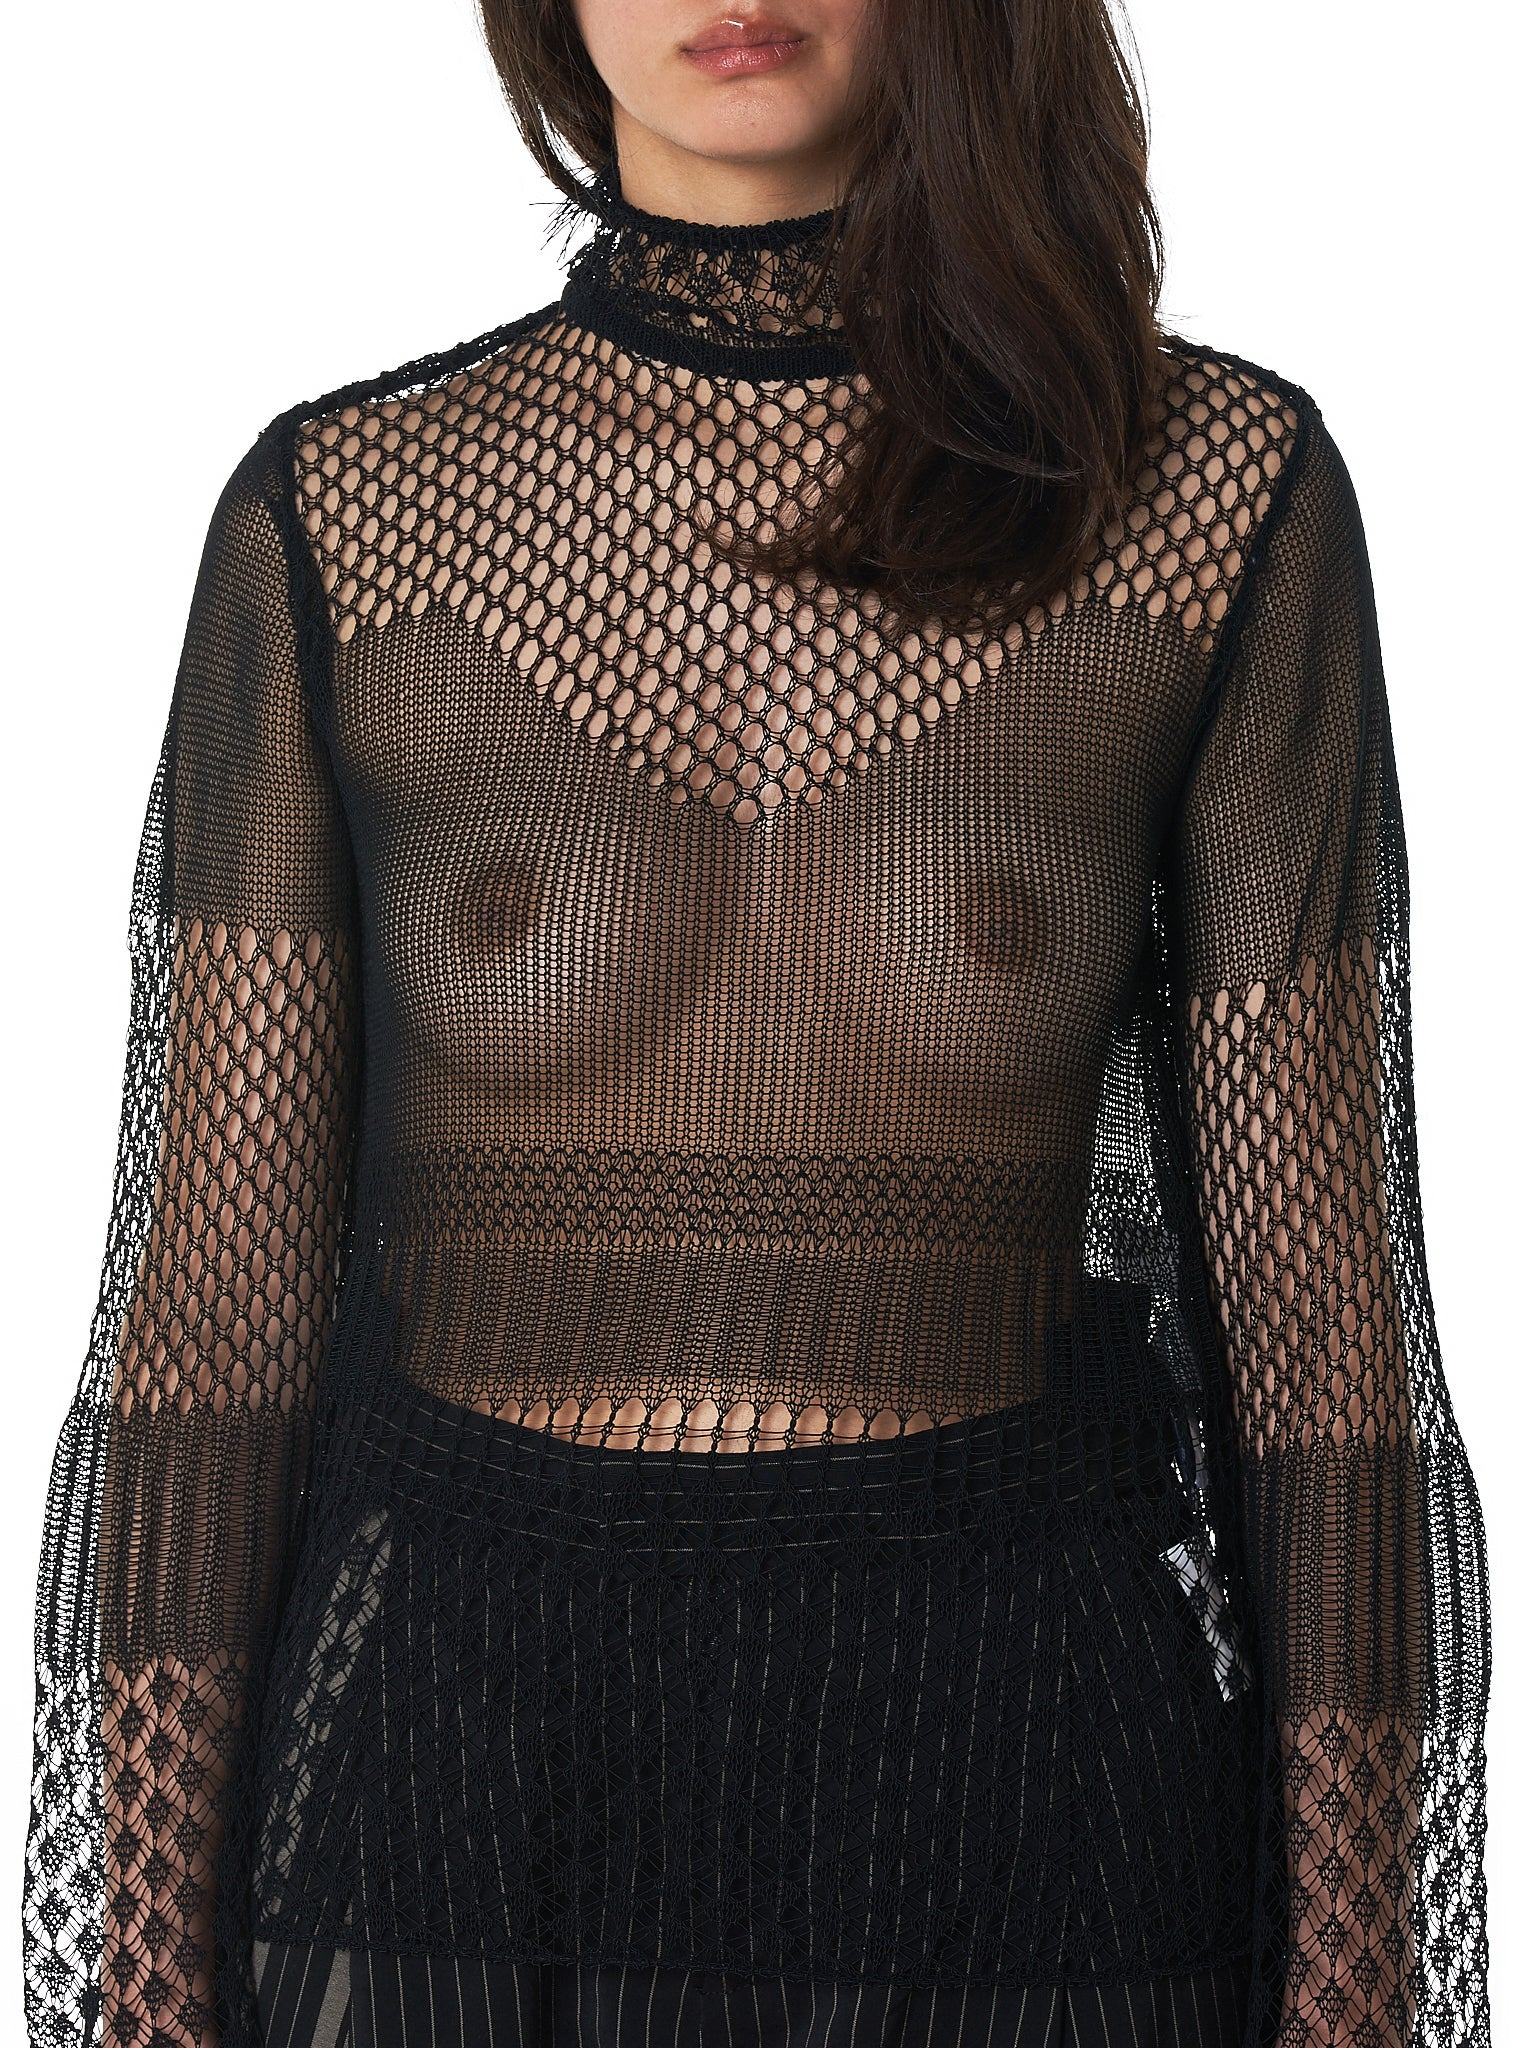 Mame Kurogouchi Fishnet Top - Hlorenzo Detail 3